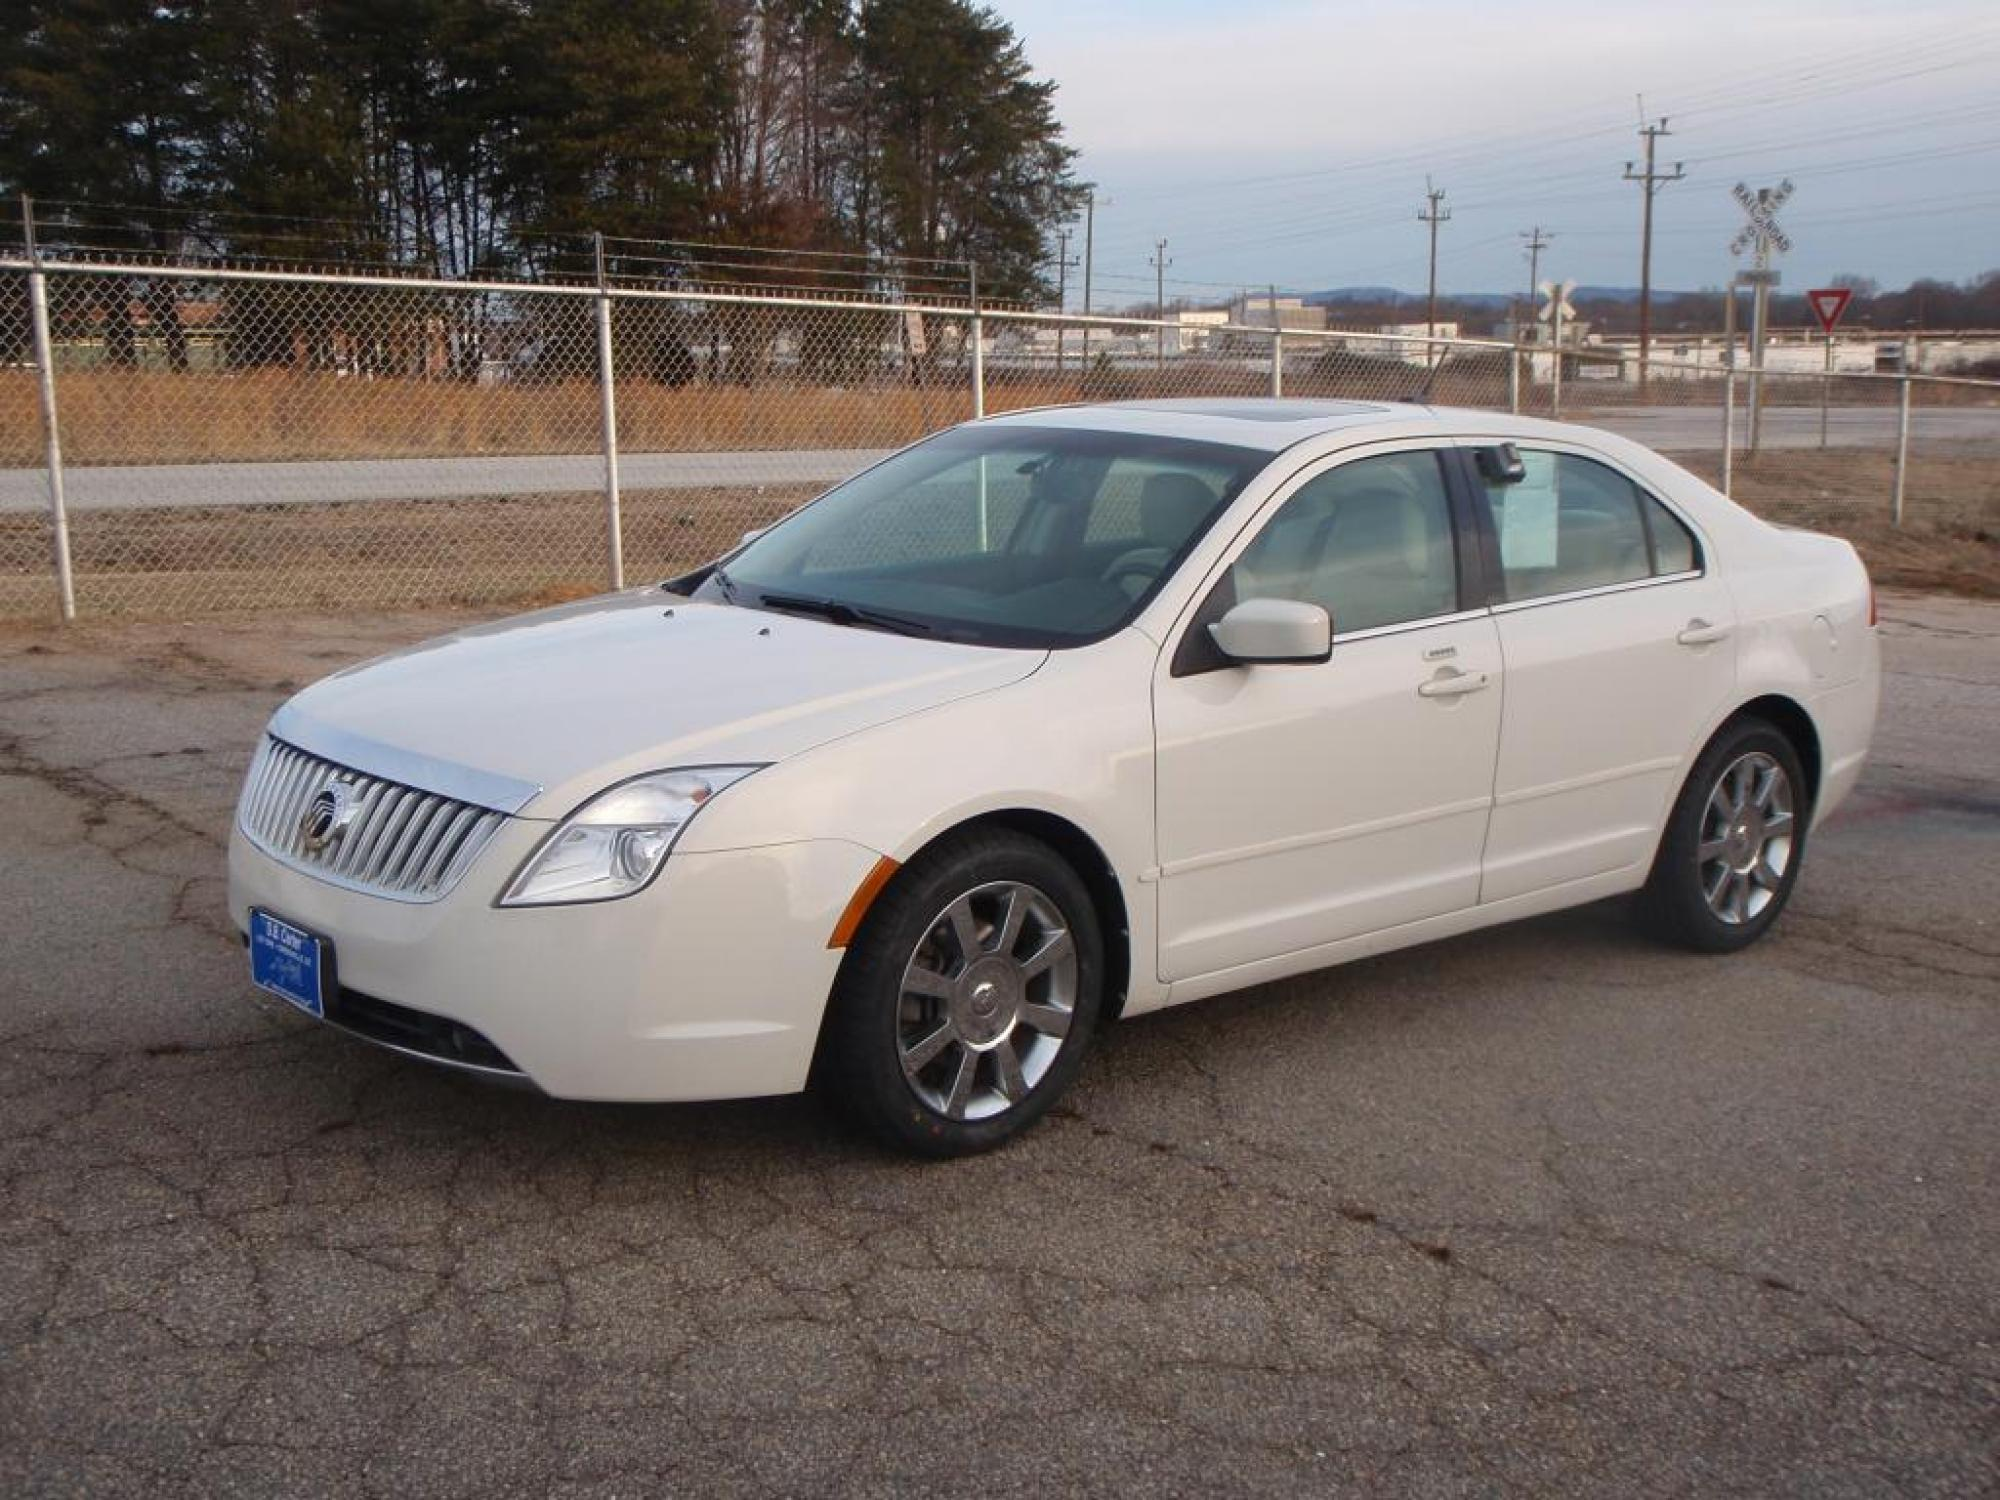 2010 Mercury Milan Voga Sdn FWD Sedan White Tan 25L DOHC Duratec 16-valve I4 engine307 axle ra